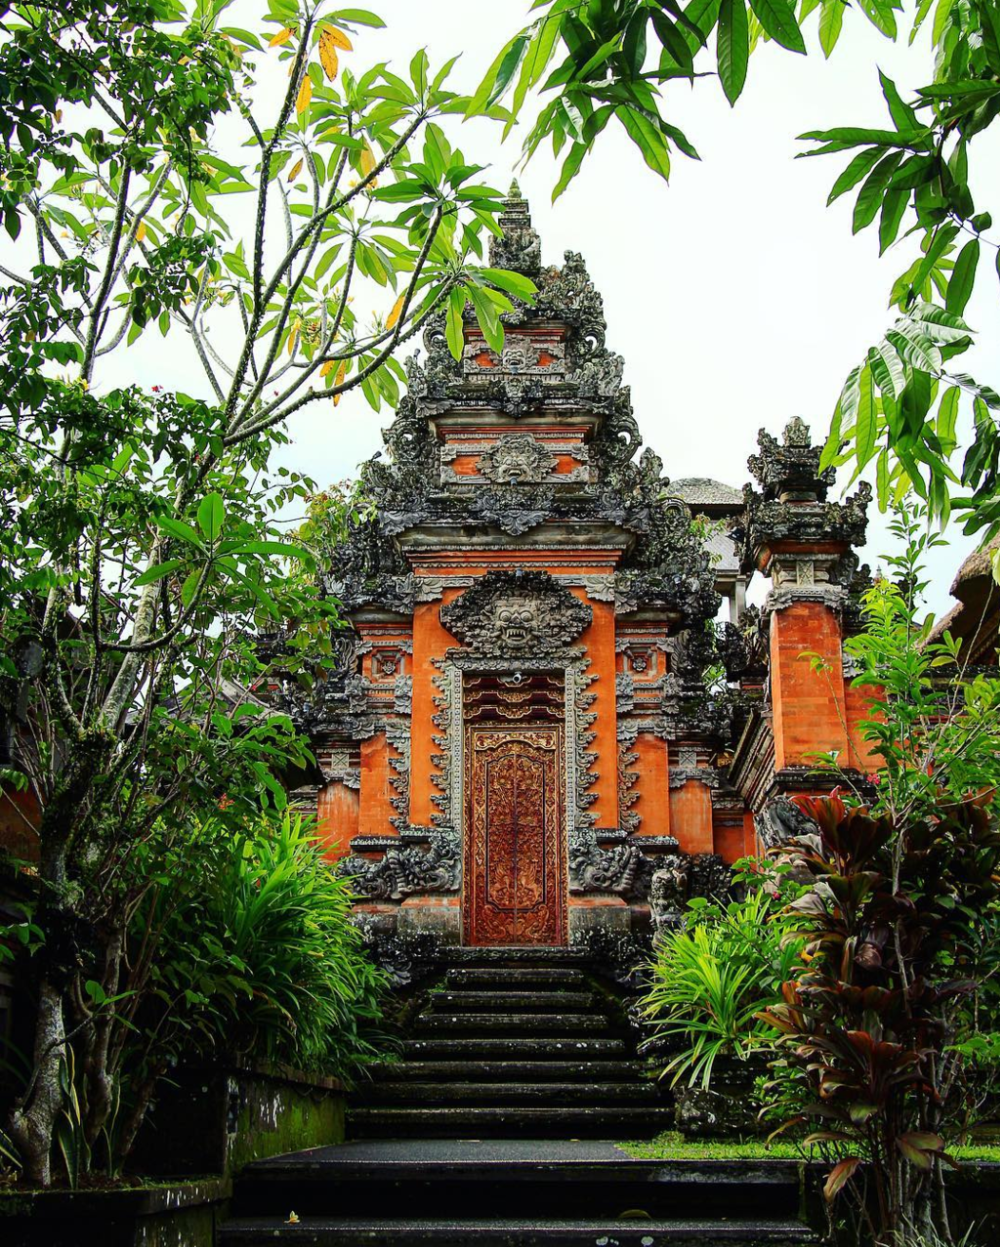 Pura Taman Saraswati  With carvings that honor Dewi Saraswati, the goddess of wisdom and the arts, and lotus filled water surrounding, this Hindu temple is a must-see in Ubud.